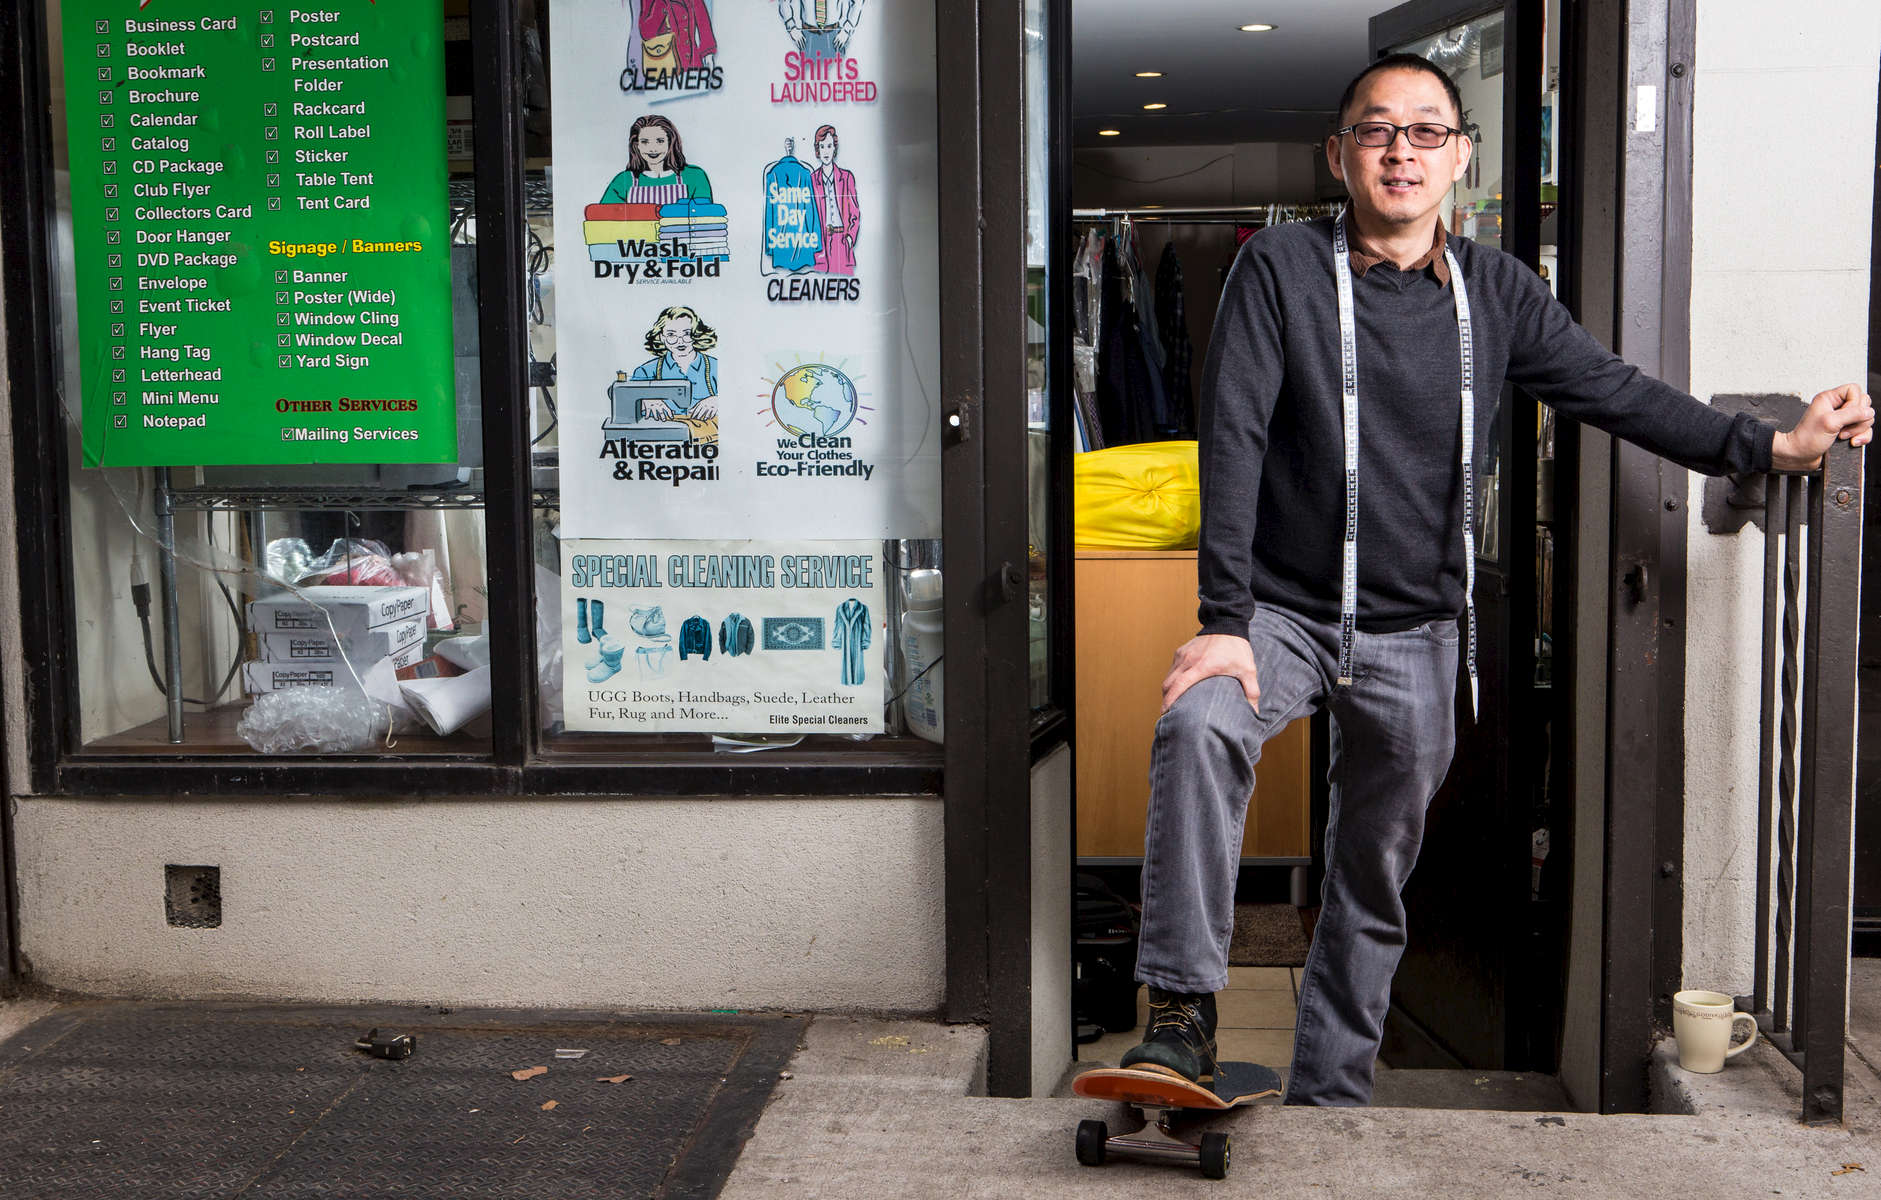 Michael Lam owner of D&M Cleaners between 1st and 2nd Ave. in front of his business. Michael rides a skateboard and does magic tricks too.